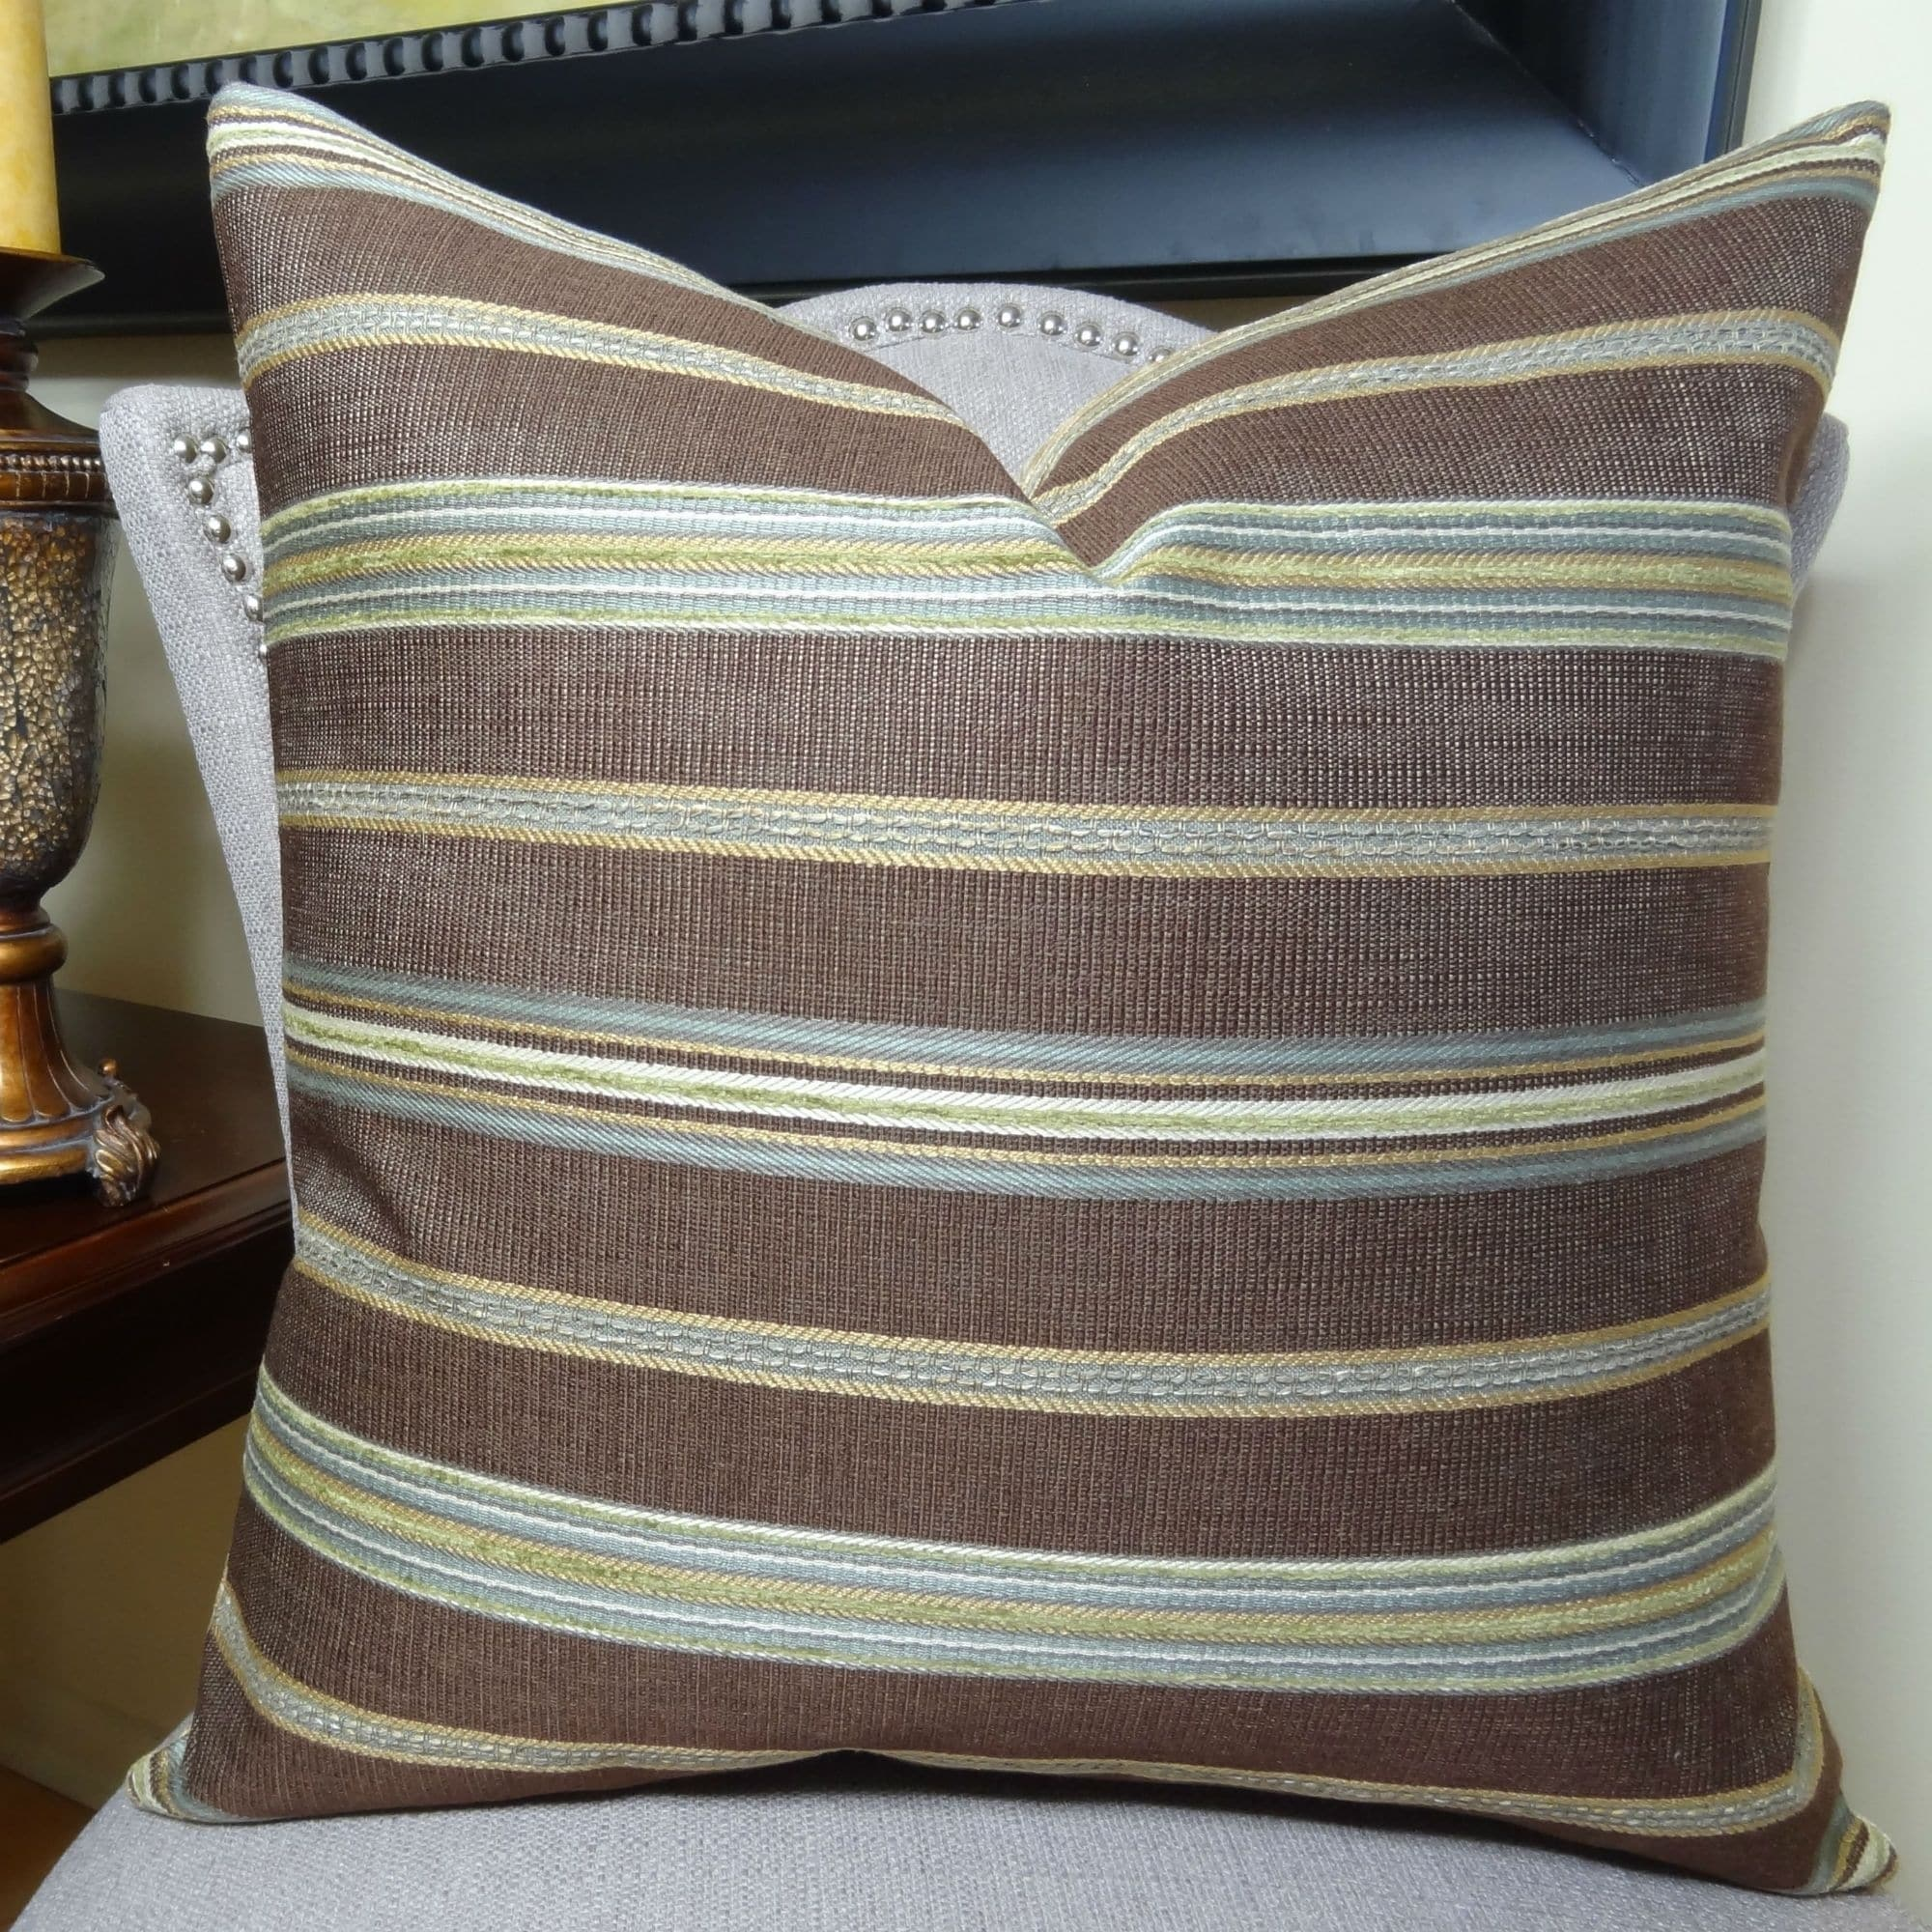 Thomas Collection Brown Striped Luxury Designer Throw Pillow For Sofa, Handmade in USA, 11283S (Medium - Square - 18 x 18)